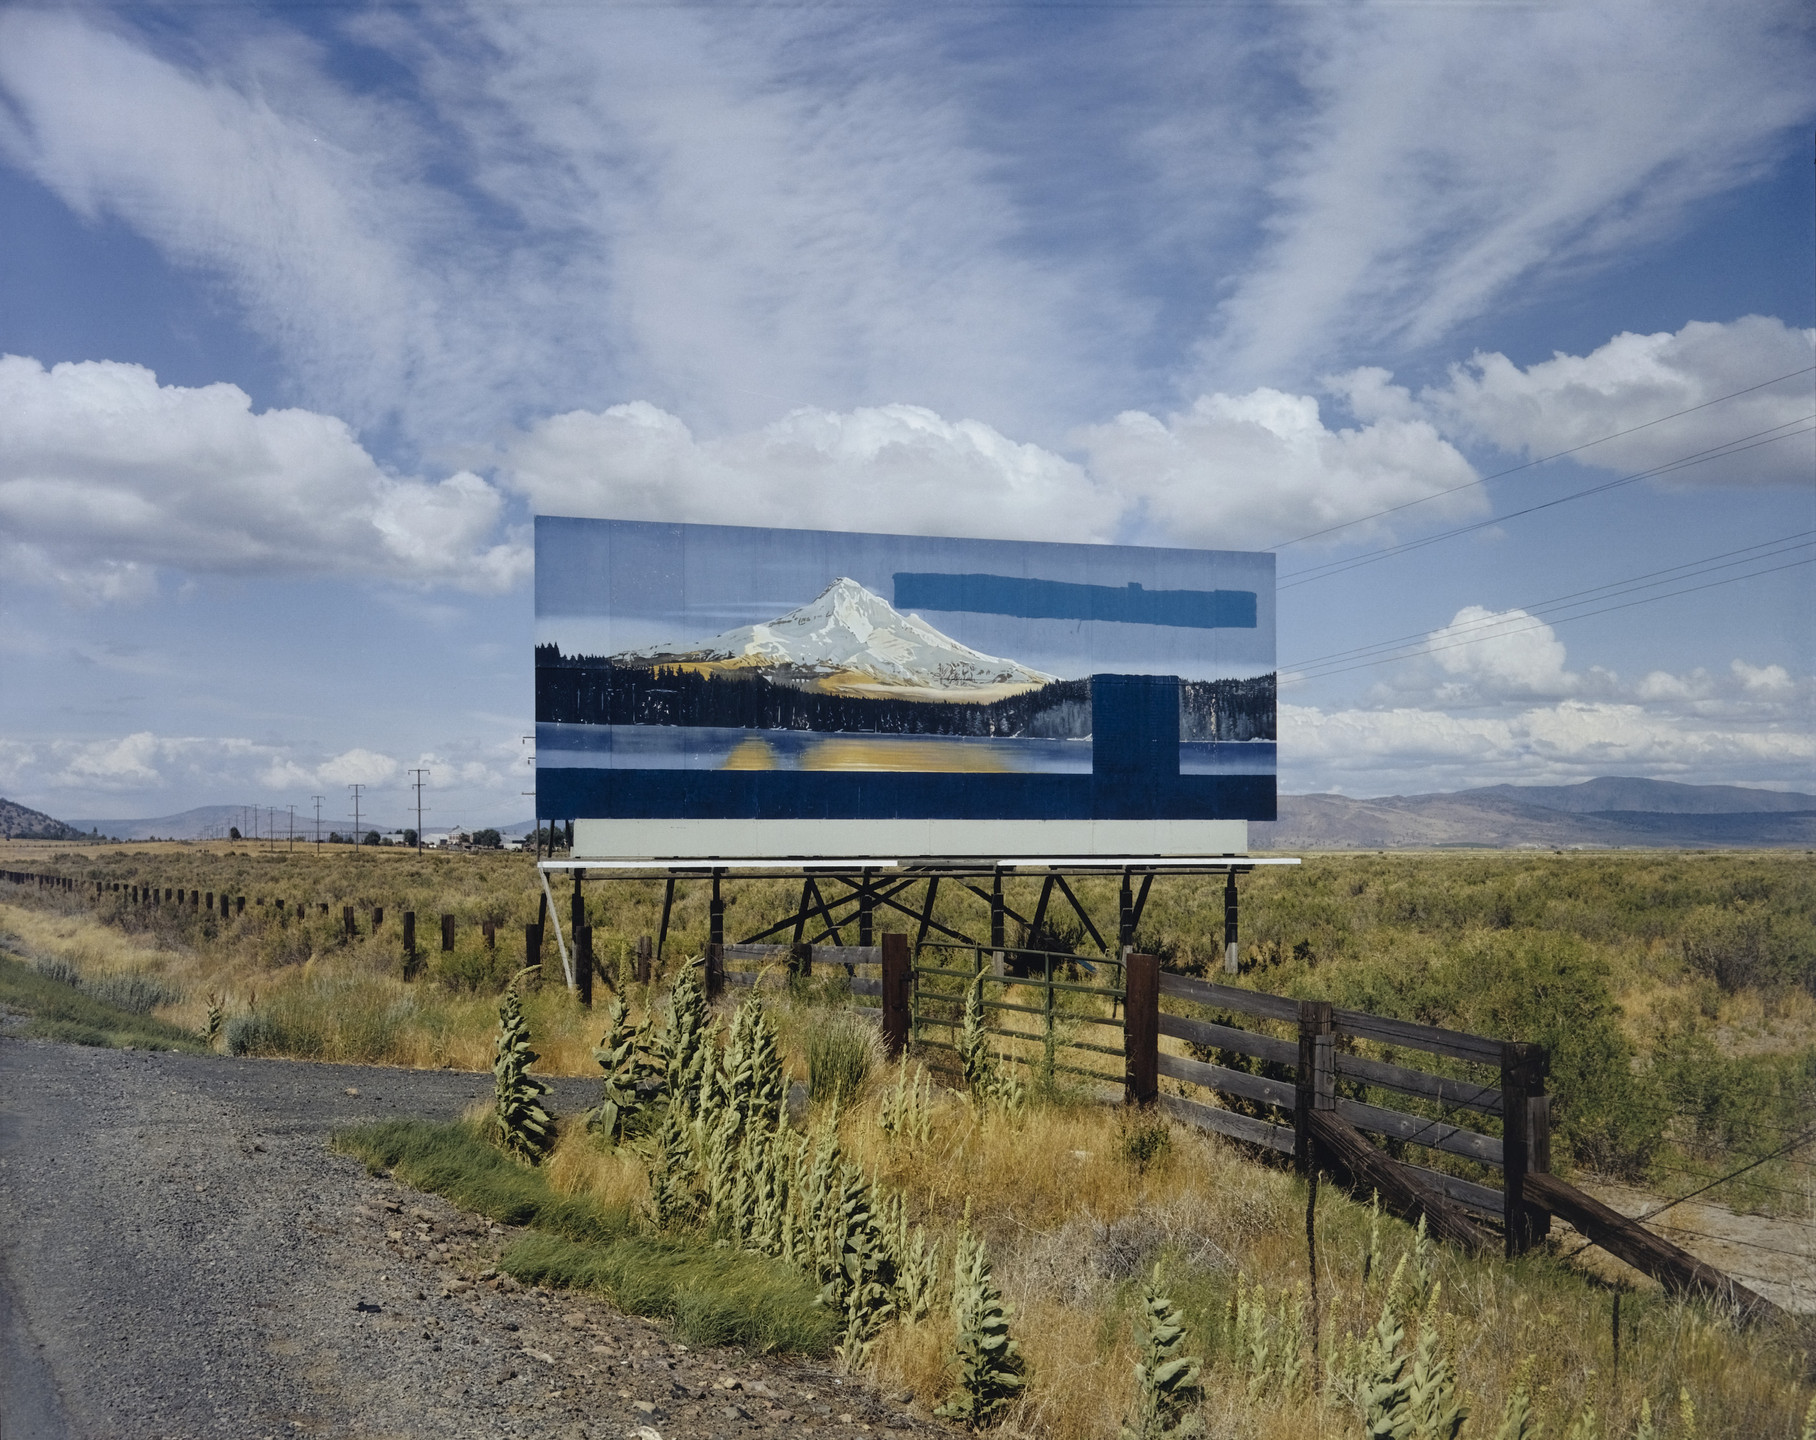 Stephen Shore. U.S. 97, South of Klamath Falls, Oregon, July 21, 1973. 1973